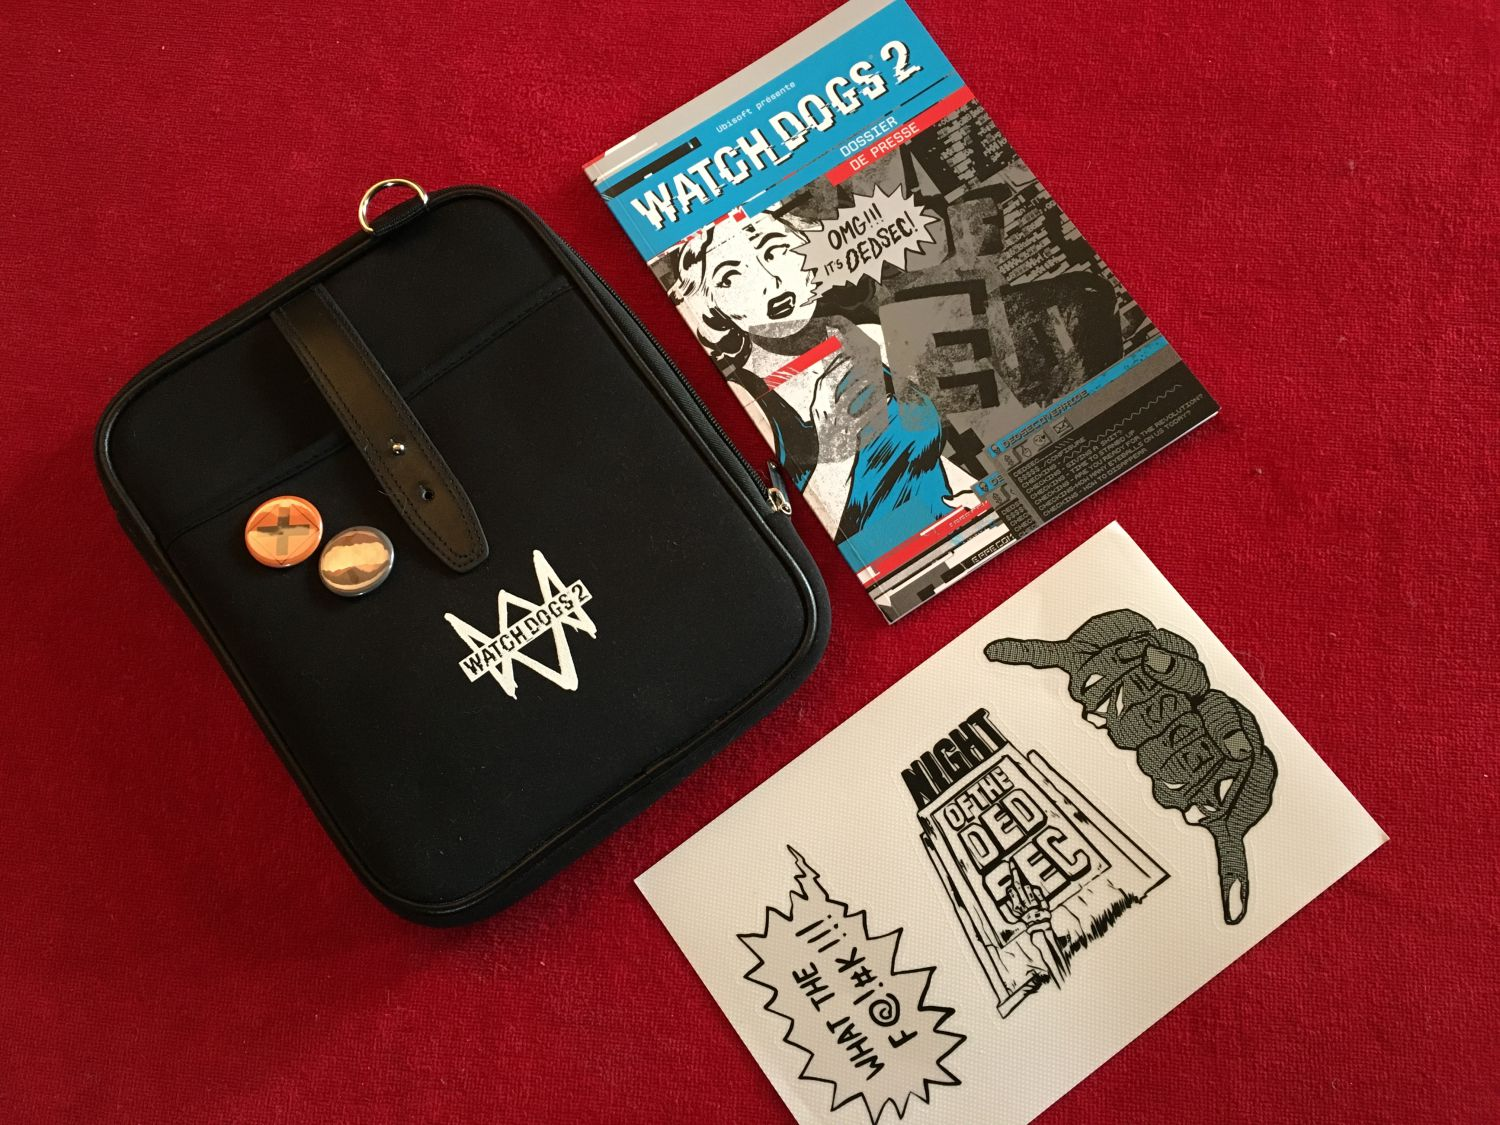 Le press kit de Watchdogs 2.